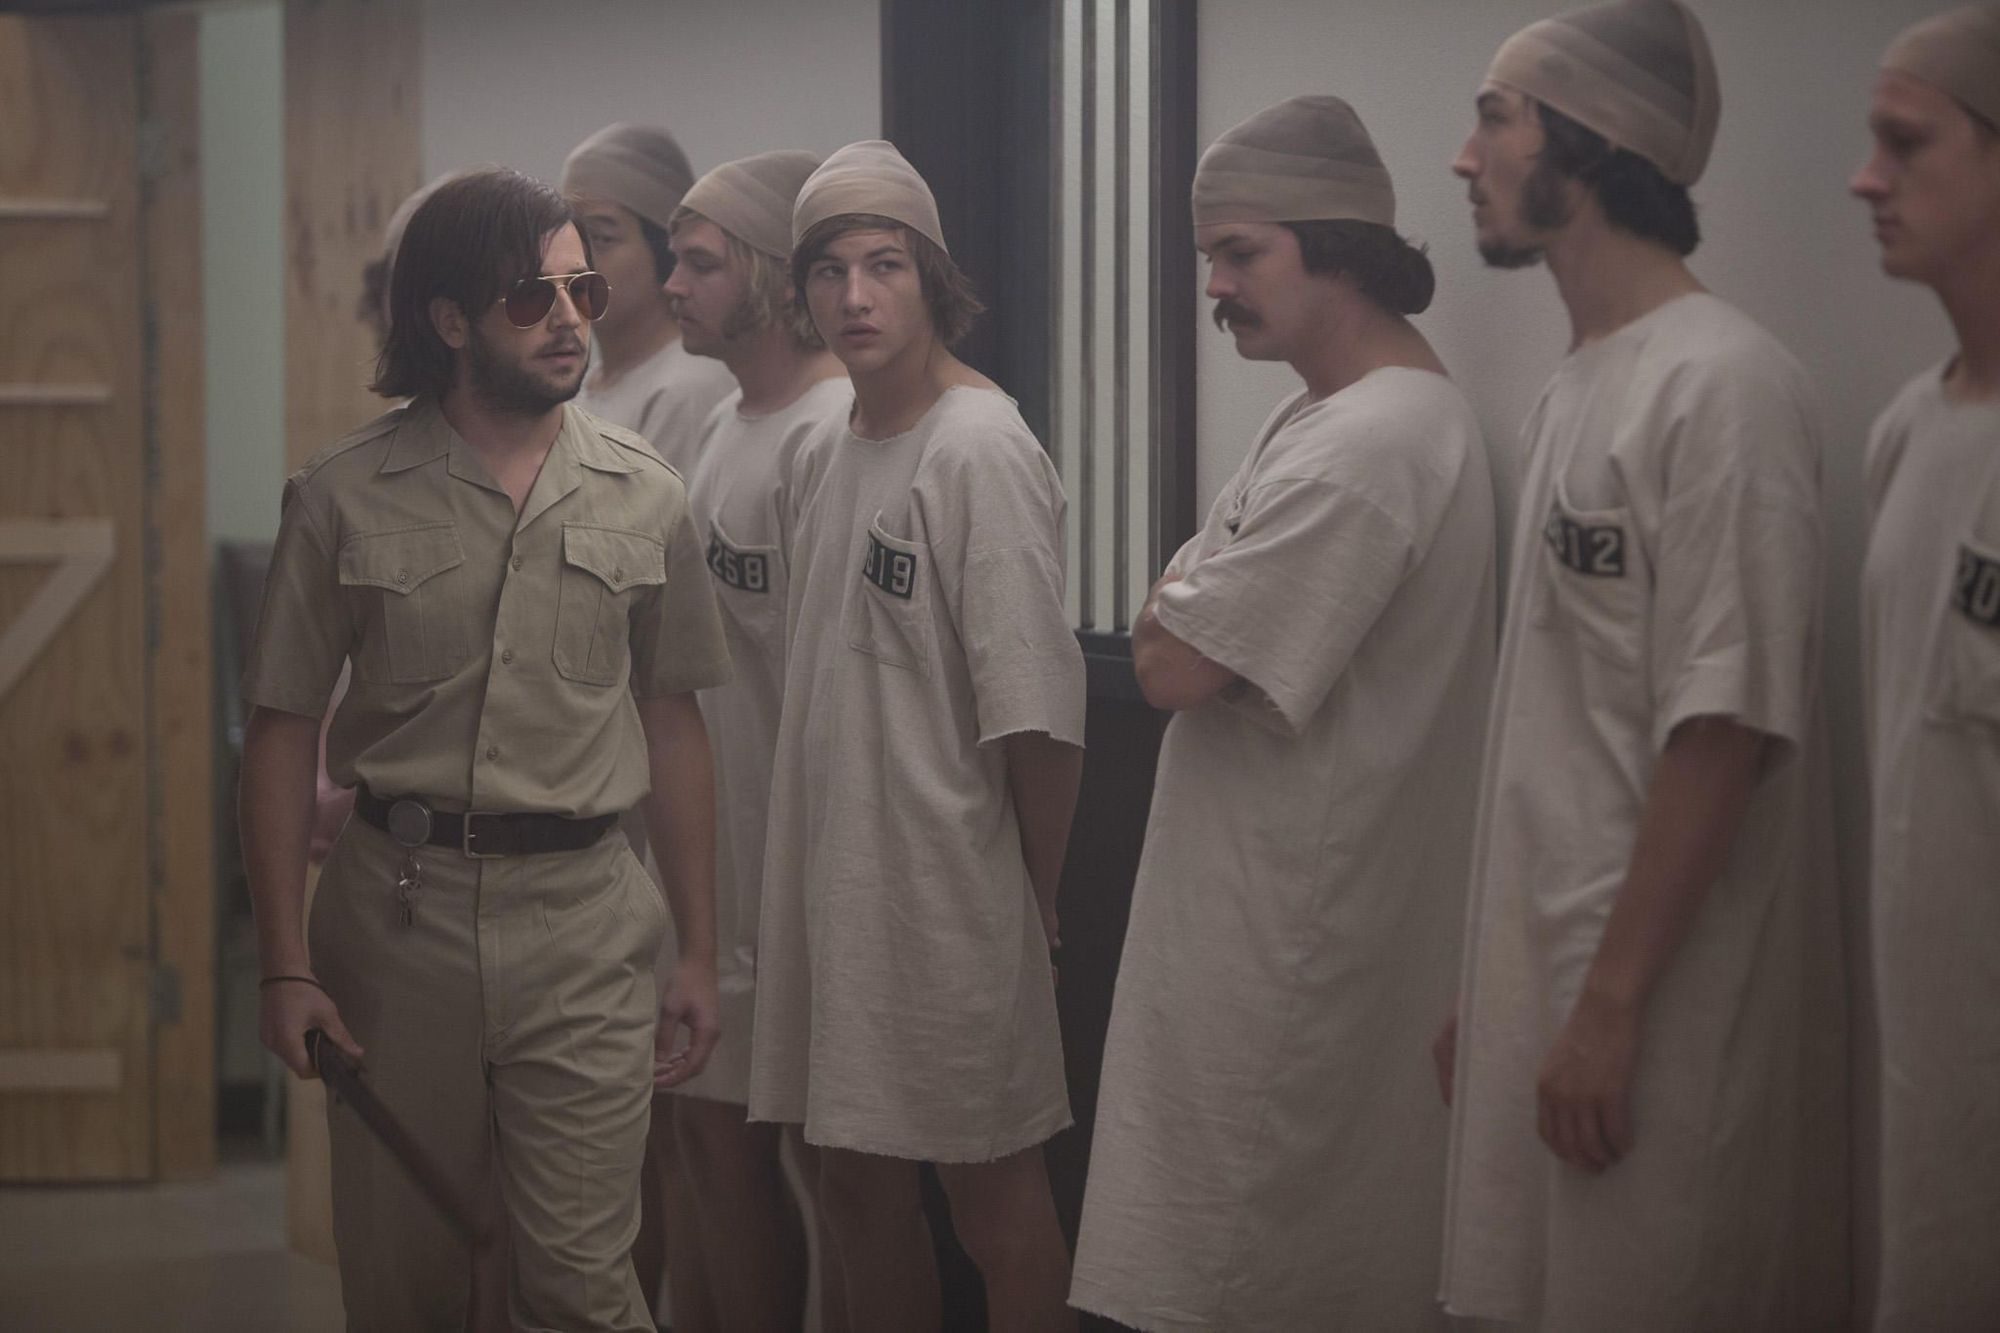 COSMOTE TV_The-Stanford-Prison-Experiment